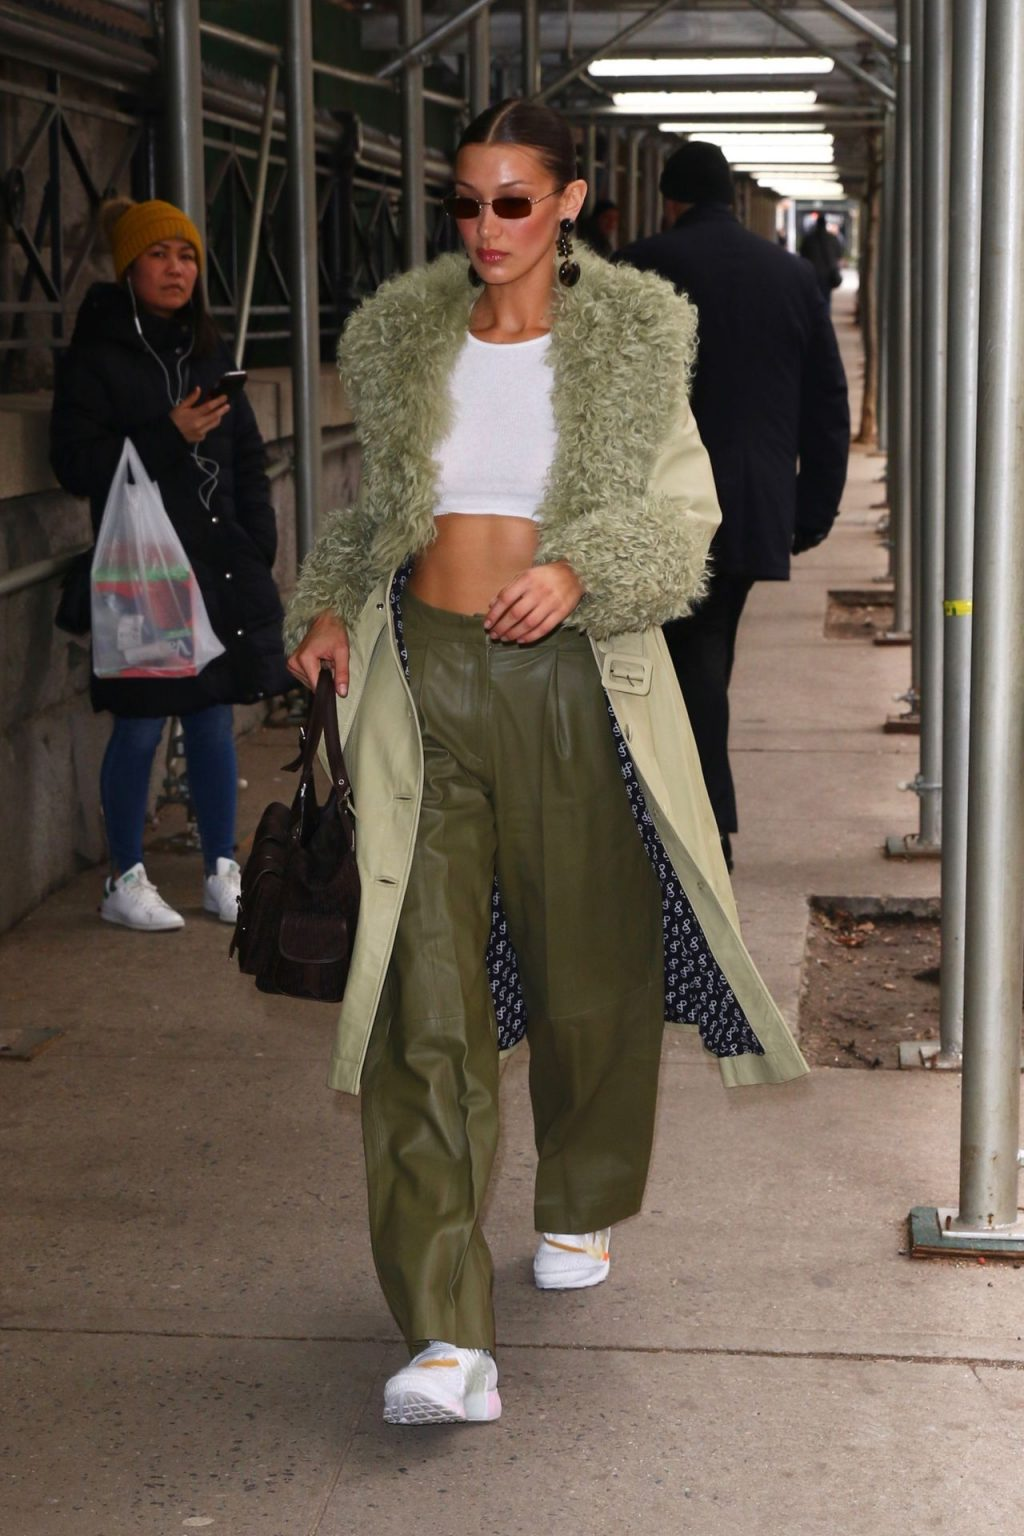 Bella Hadid See through The Fappening Blog 54 1024x1536 - Braless Bella Hadid Arrives at the Park Avenue Armory for the Marc Jacobs Fashion Show (59 Photos)